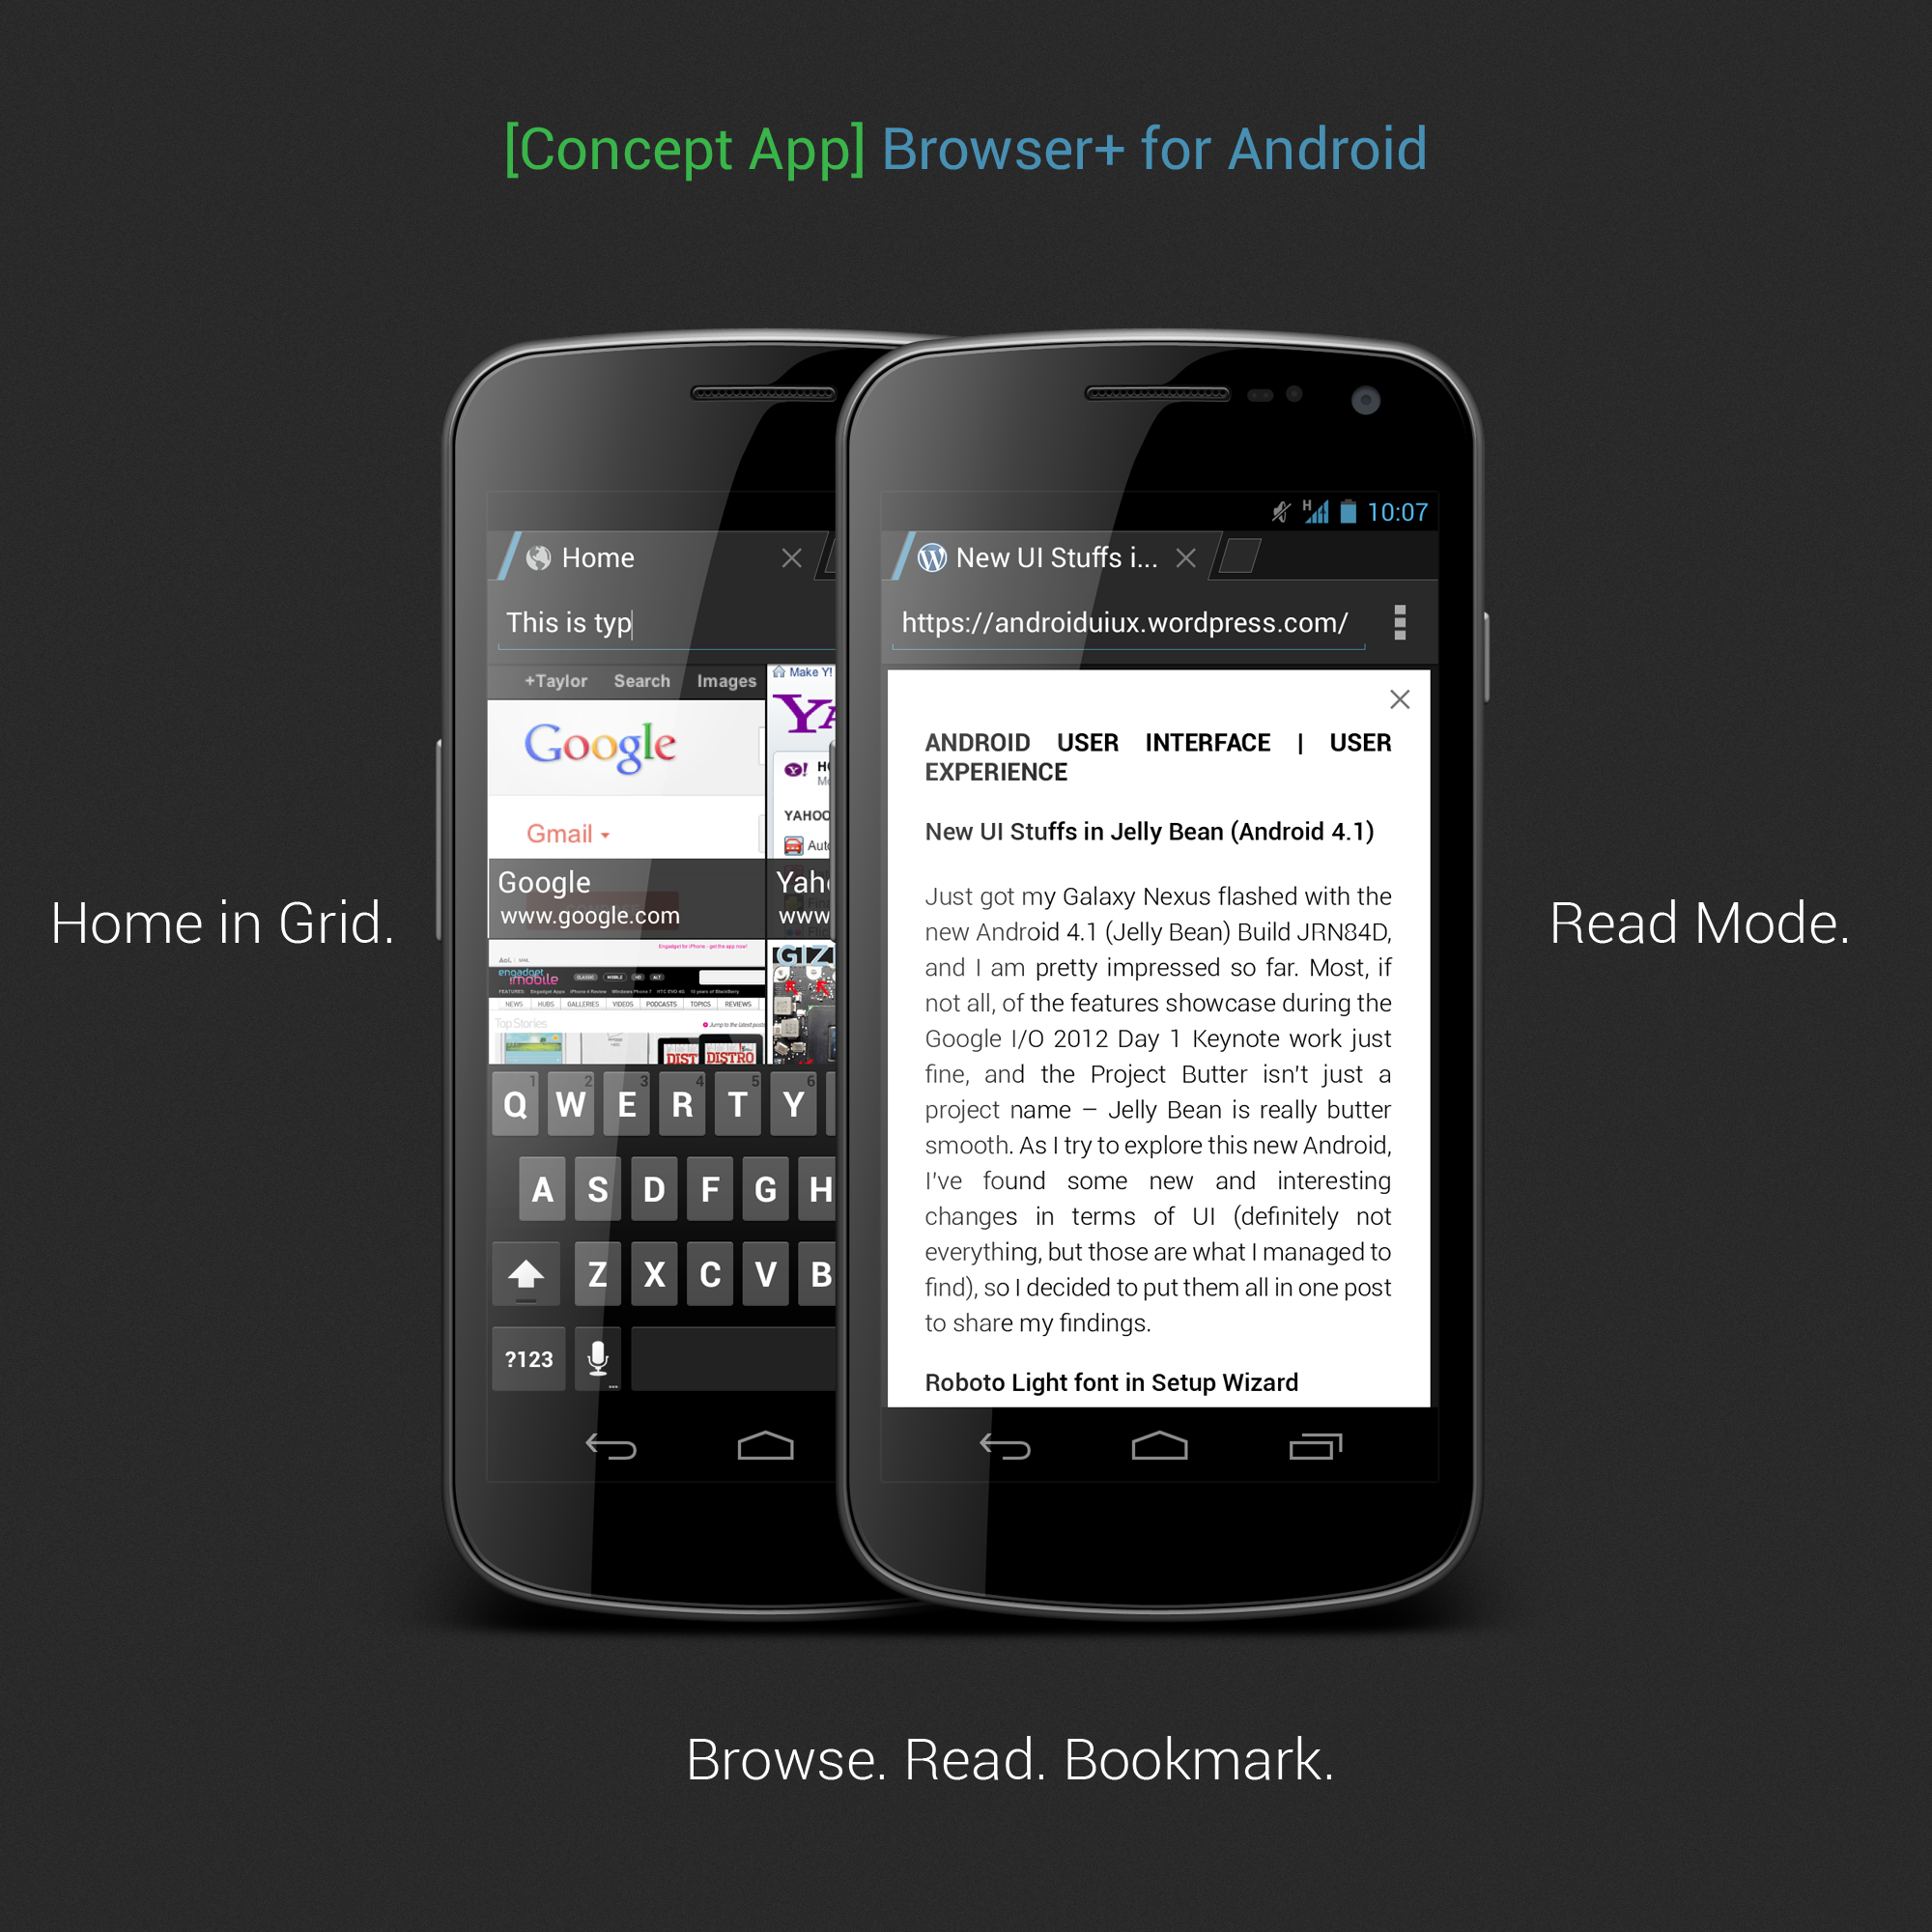 [Concept] Browser+ for Android by ghost301